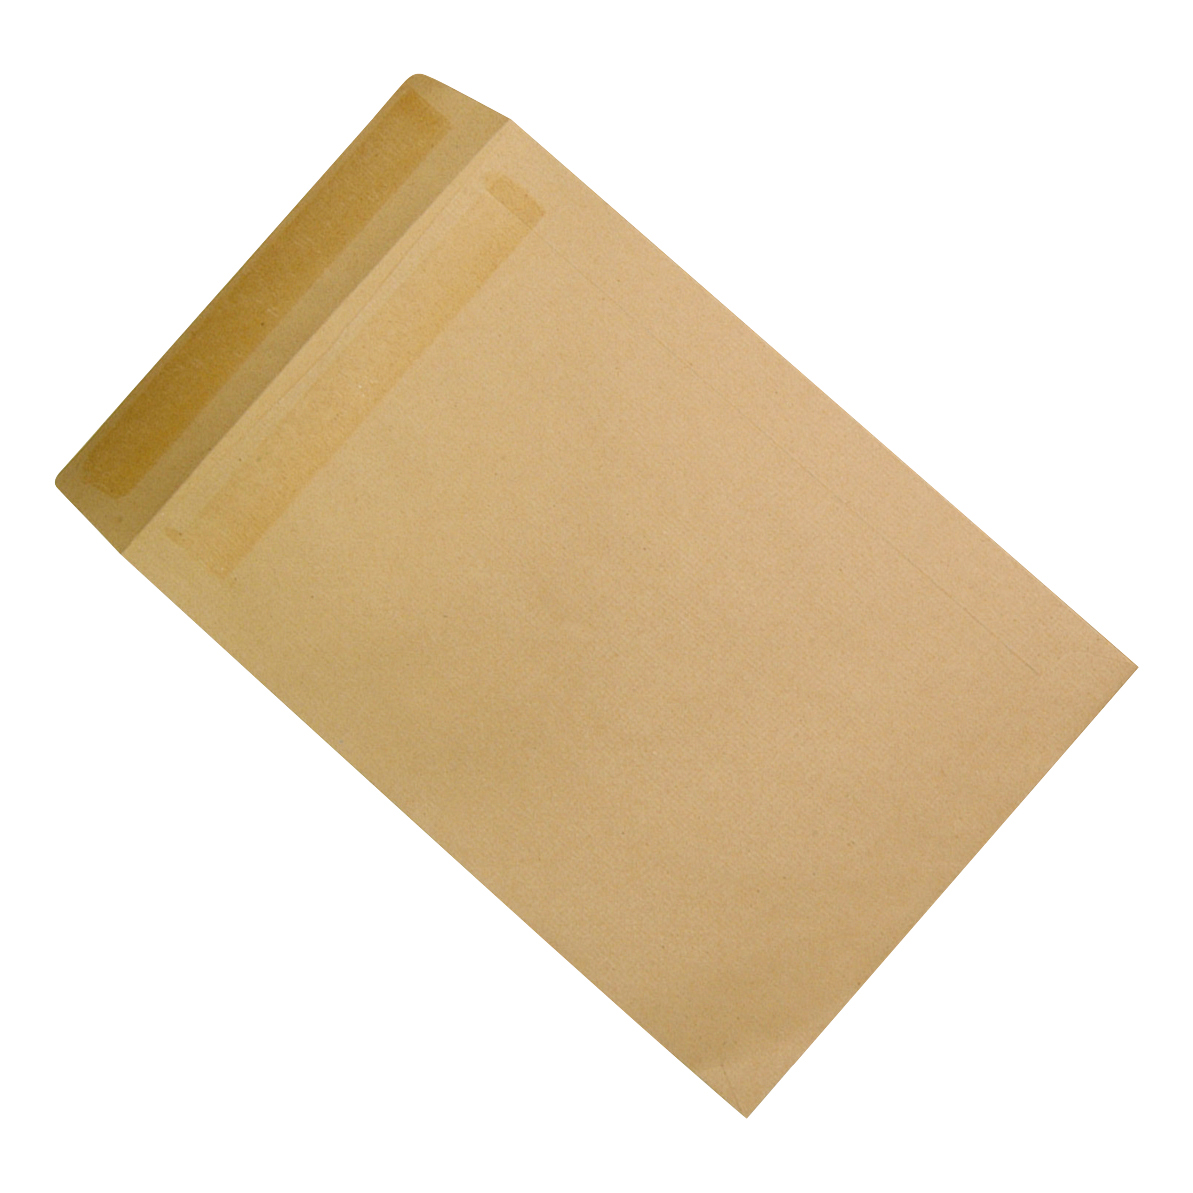 5 Star Office Envelopes Recycled 381x254mm Pocket Self Seal 90gsm Manilla [Pack 250]